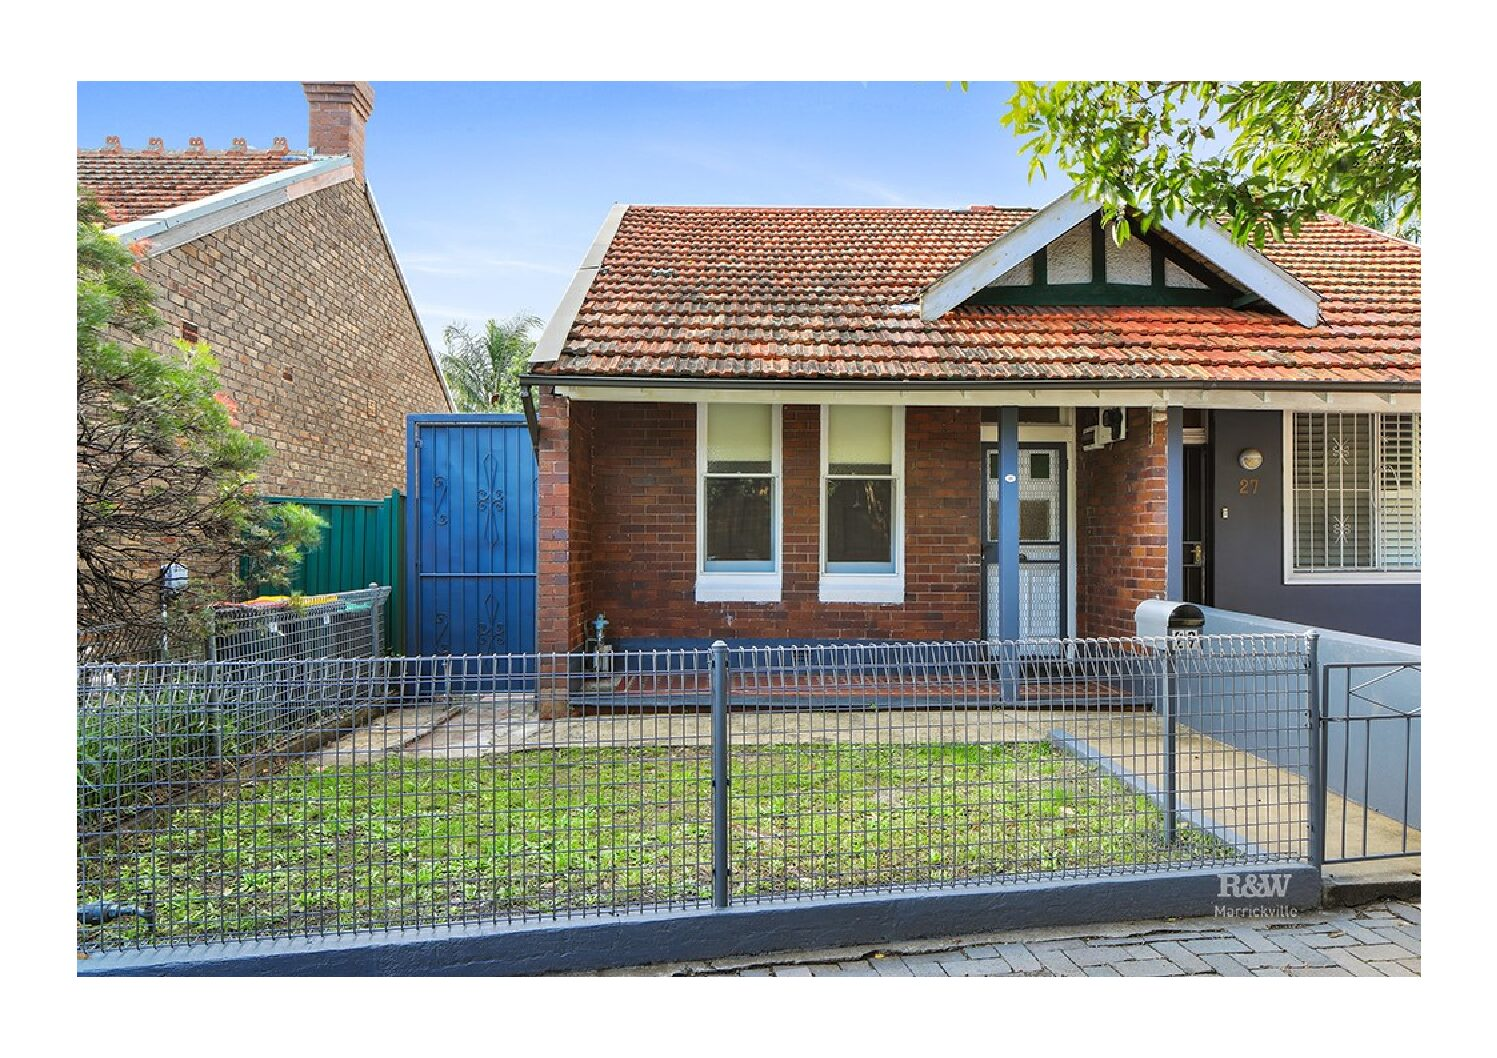 29 Victoria Road Marrickville Elevation